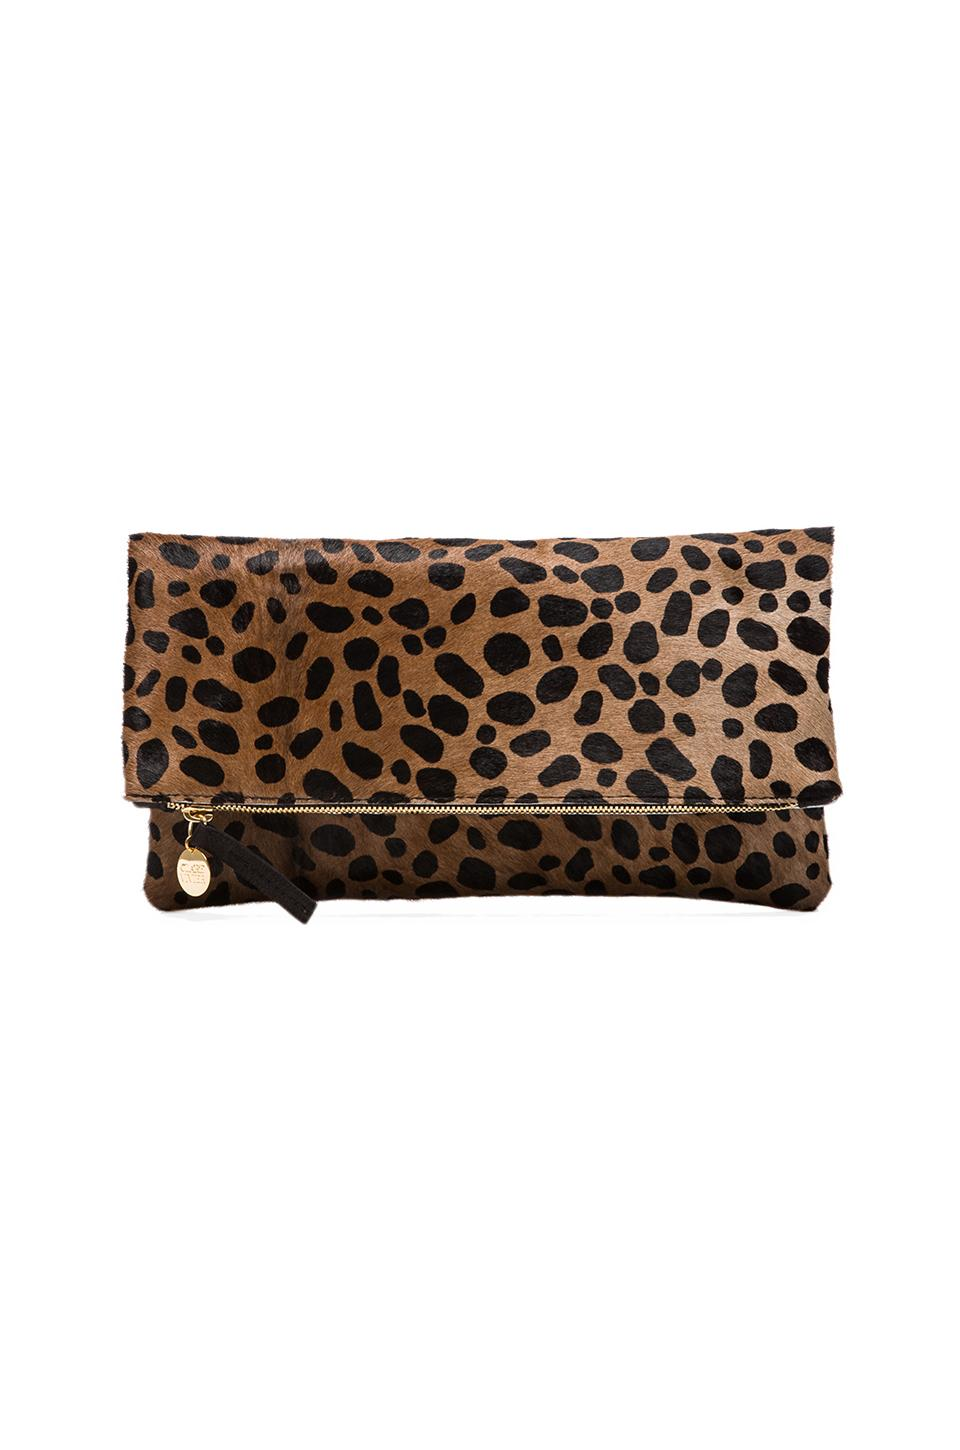 Clare V. Foldover Clutch in Leopard from REVOLVEclothing.com